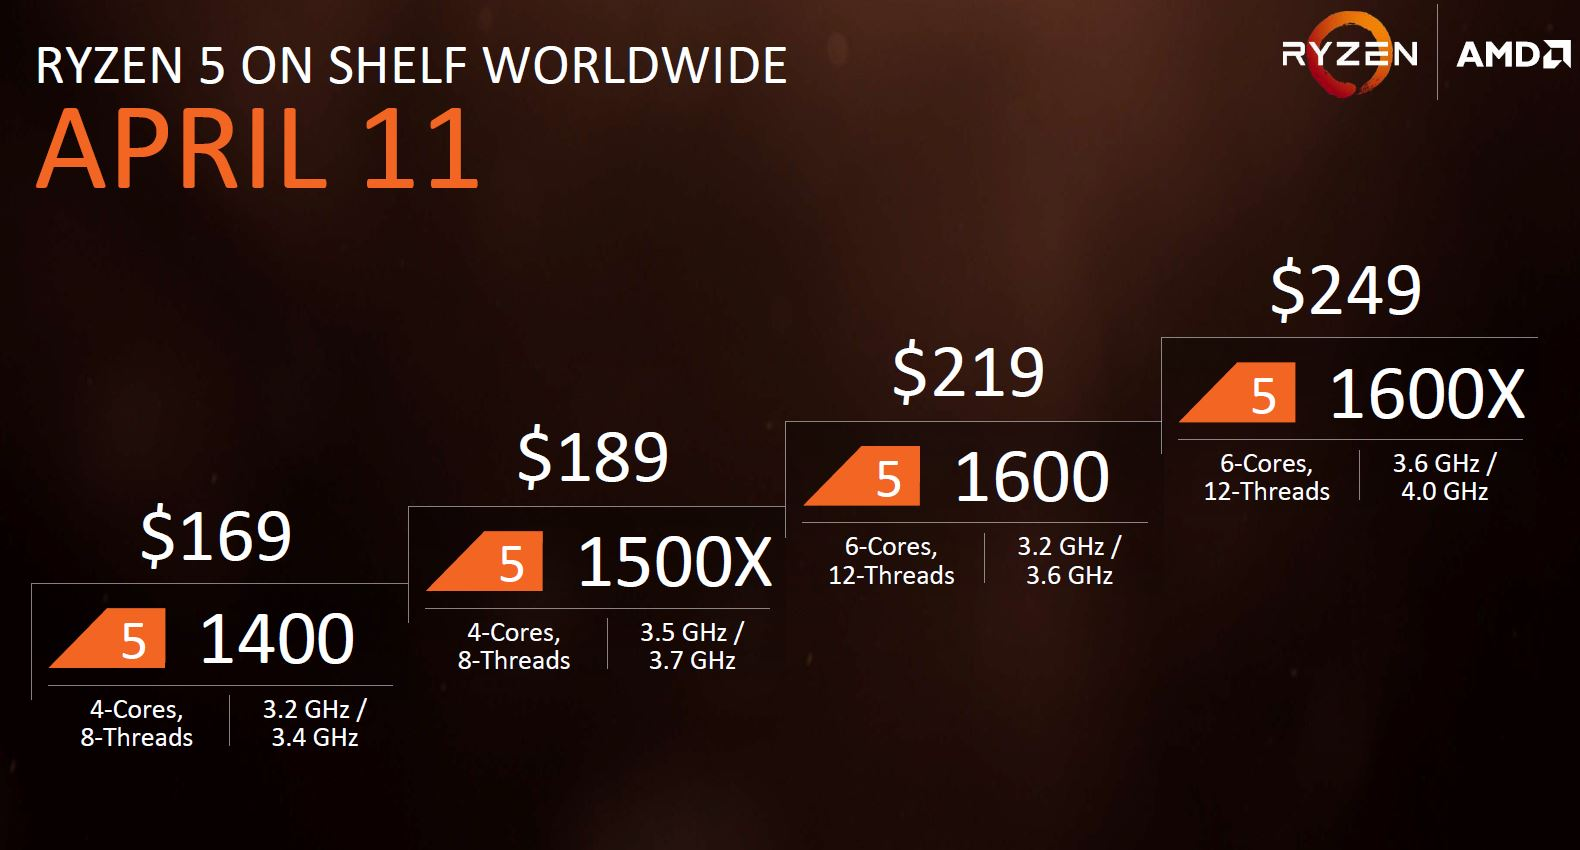 AMD Ryzen 5 Launch SKUs And Pricing